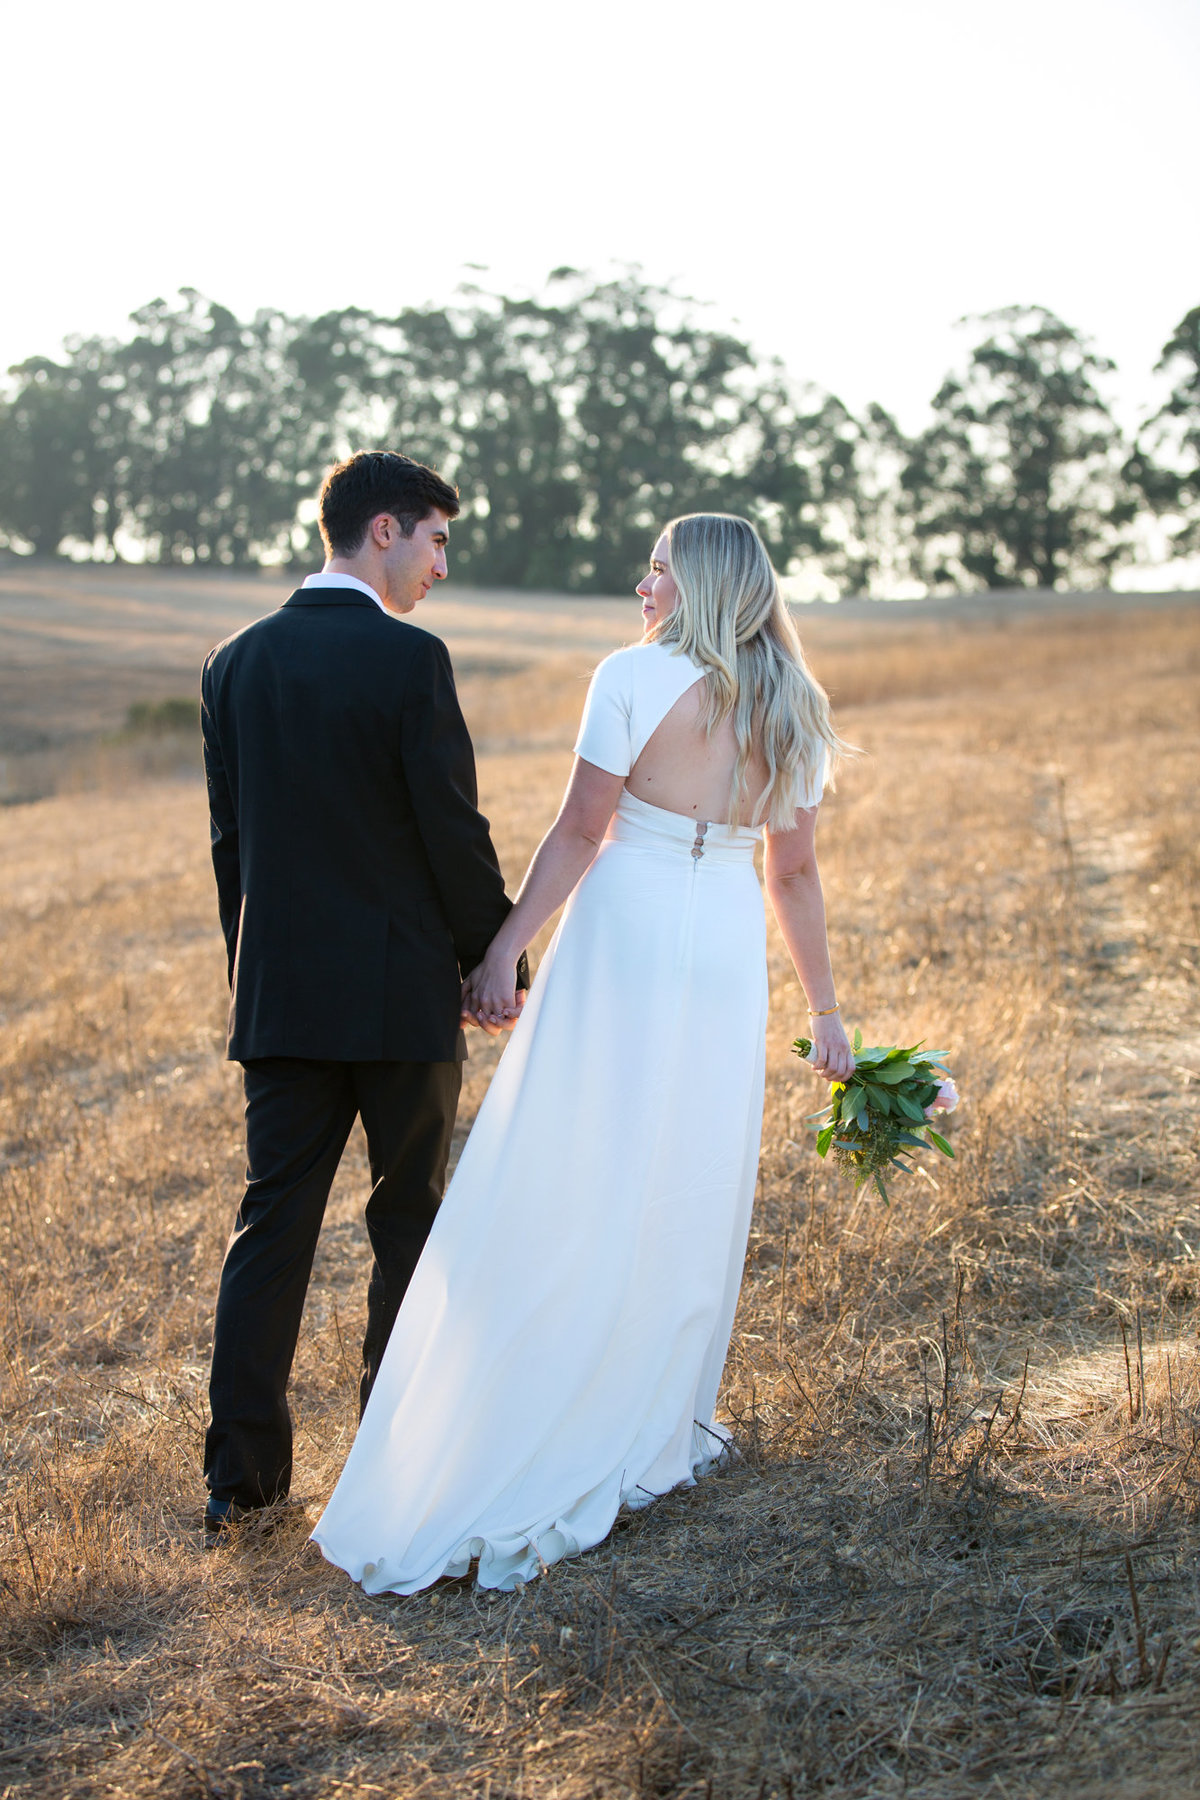 Sunset at Arastradero Park in Palo Alto for Beautiful Engagement Photos